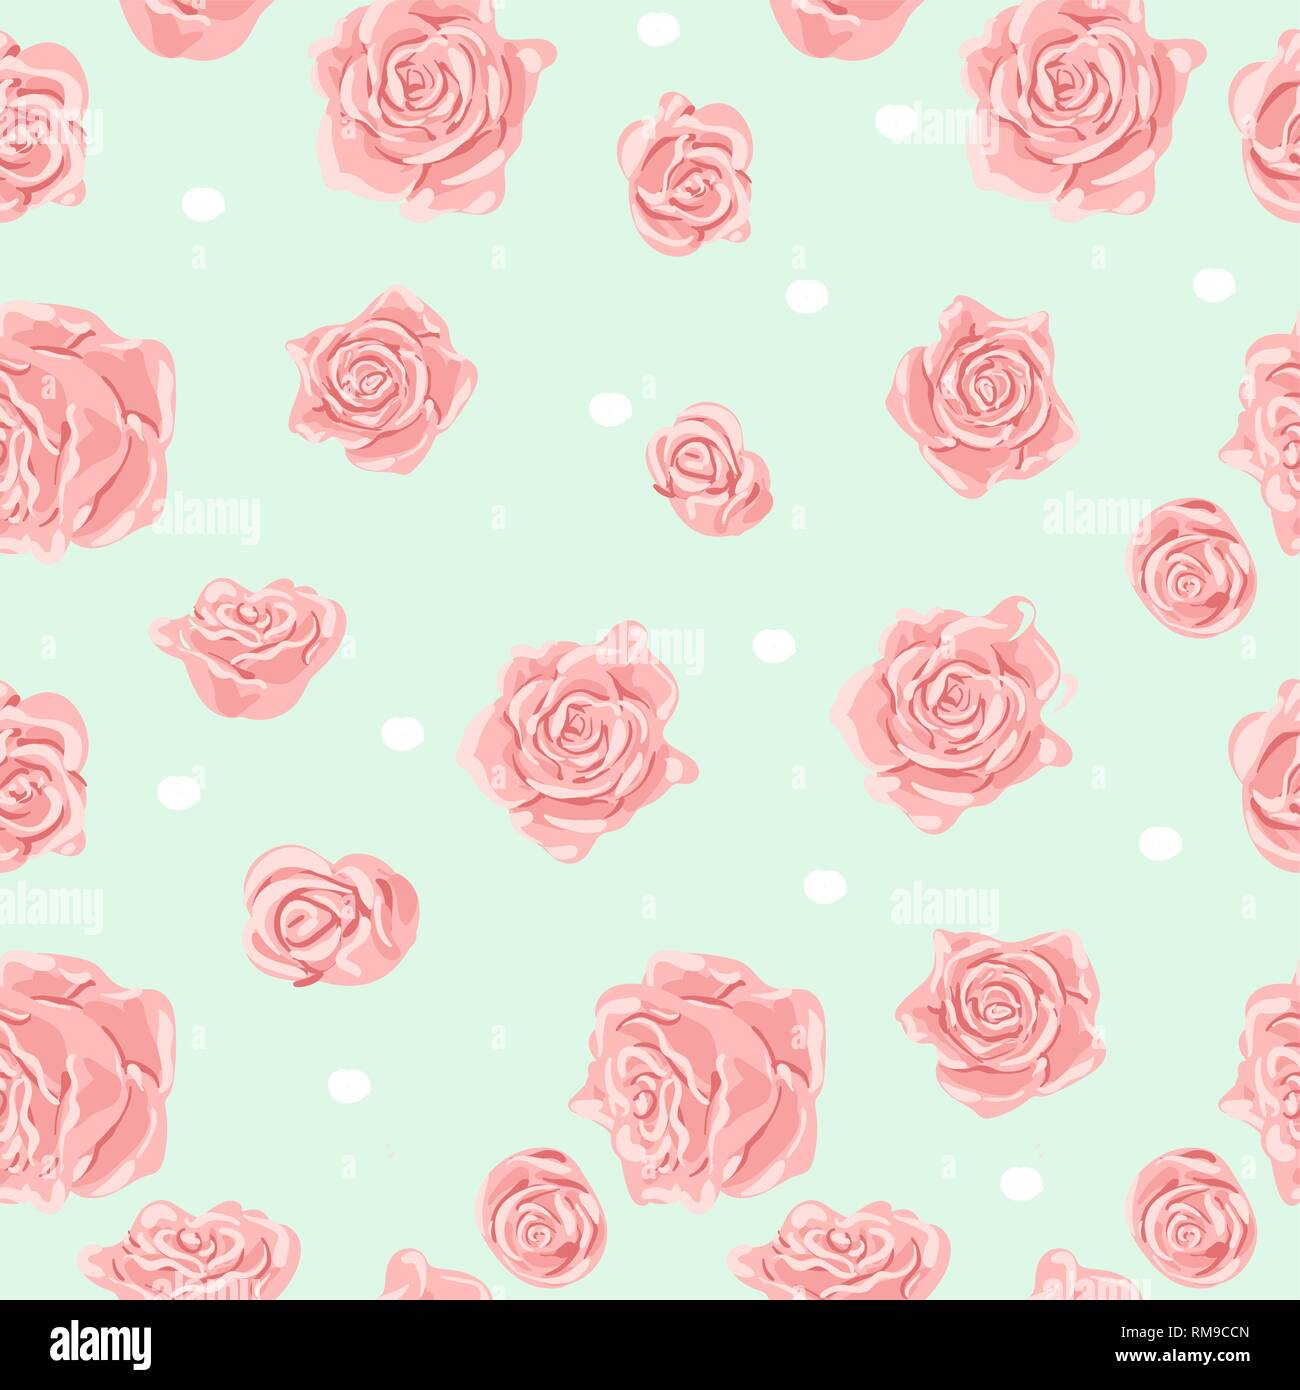 Seamless Pattern With Pink And White Roses Romantic Wallpaper